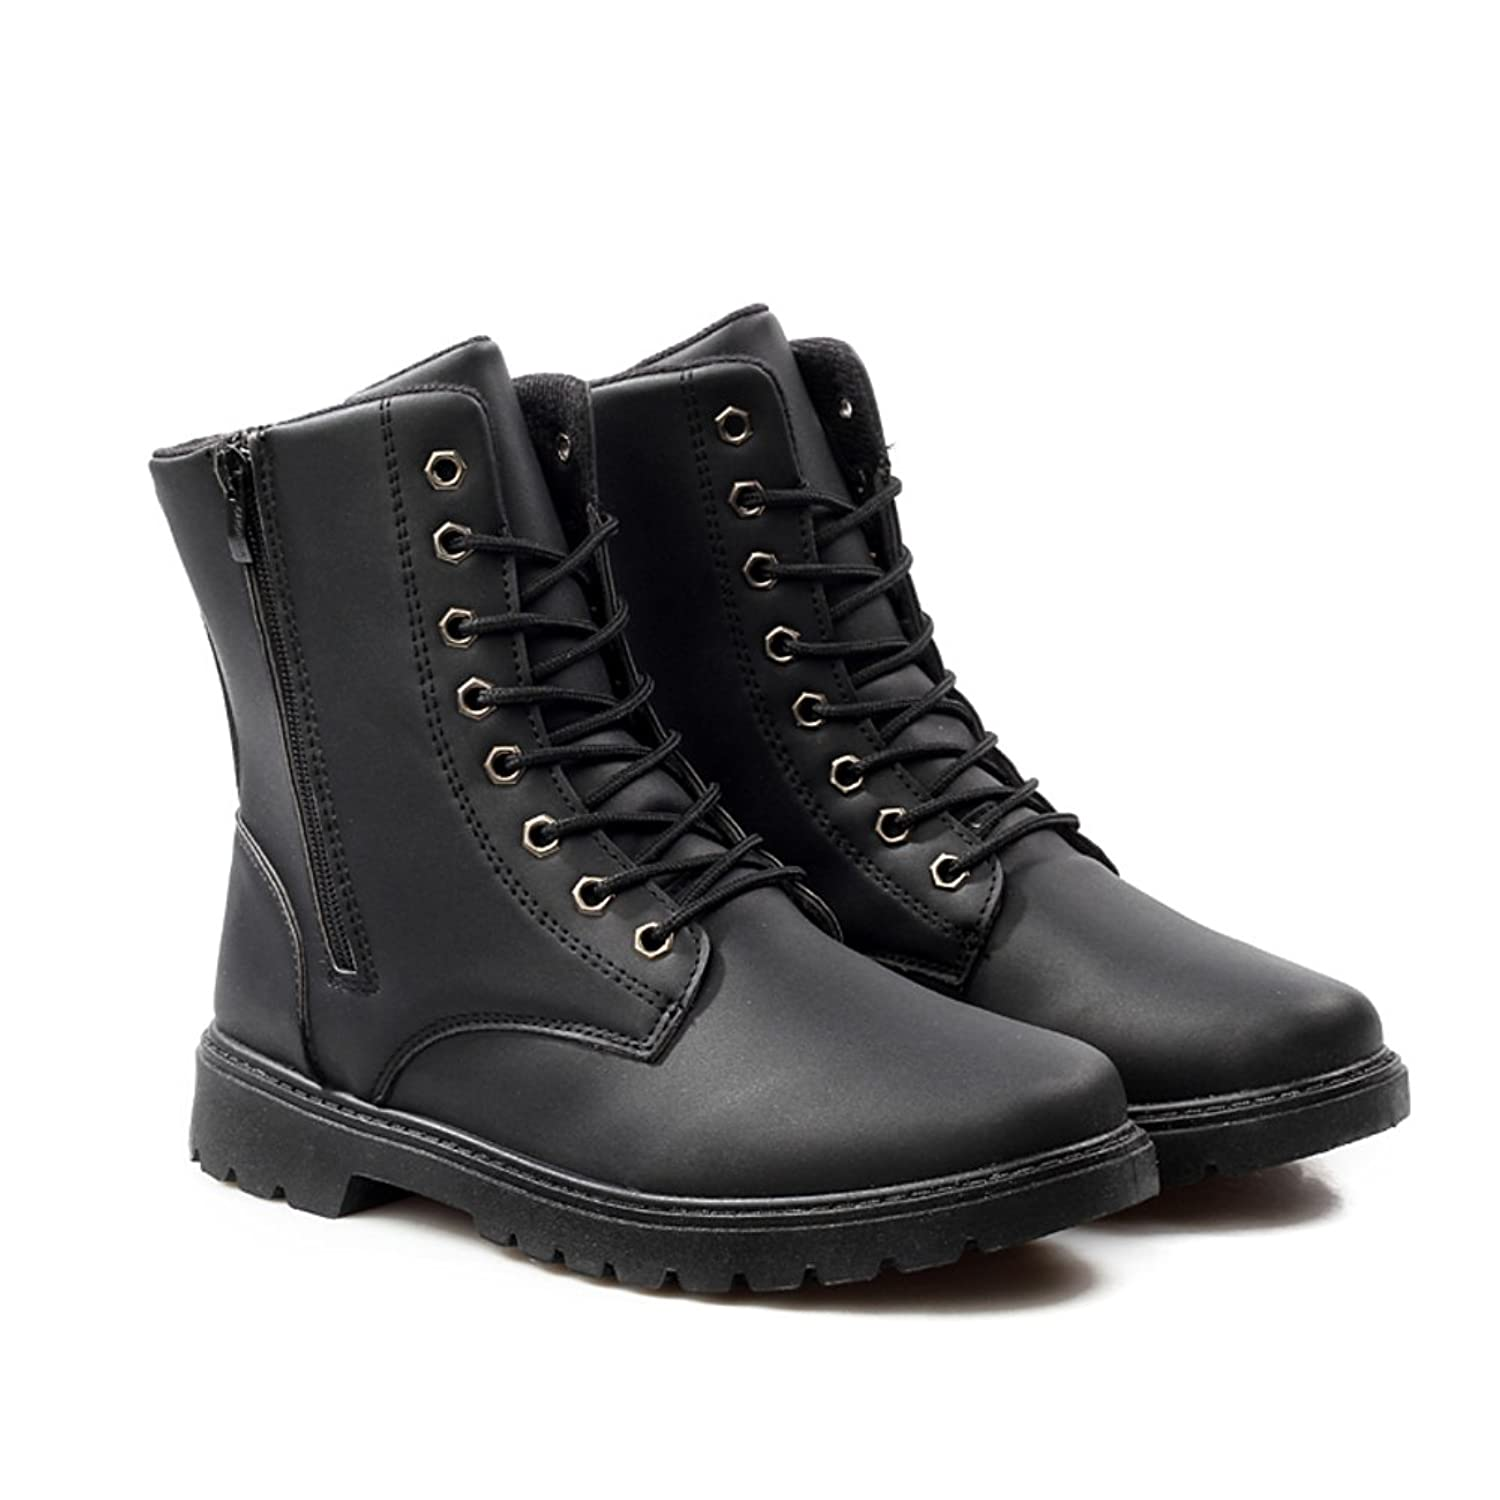 Martin boots/Men's casual shoes/Joker trend mens shoes